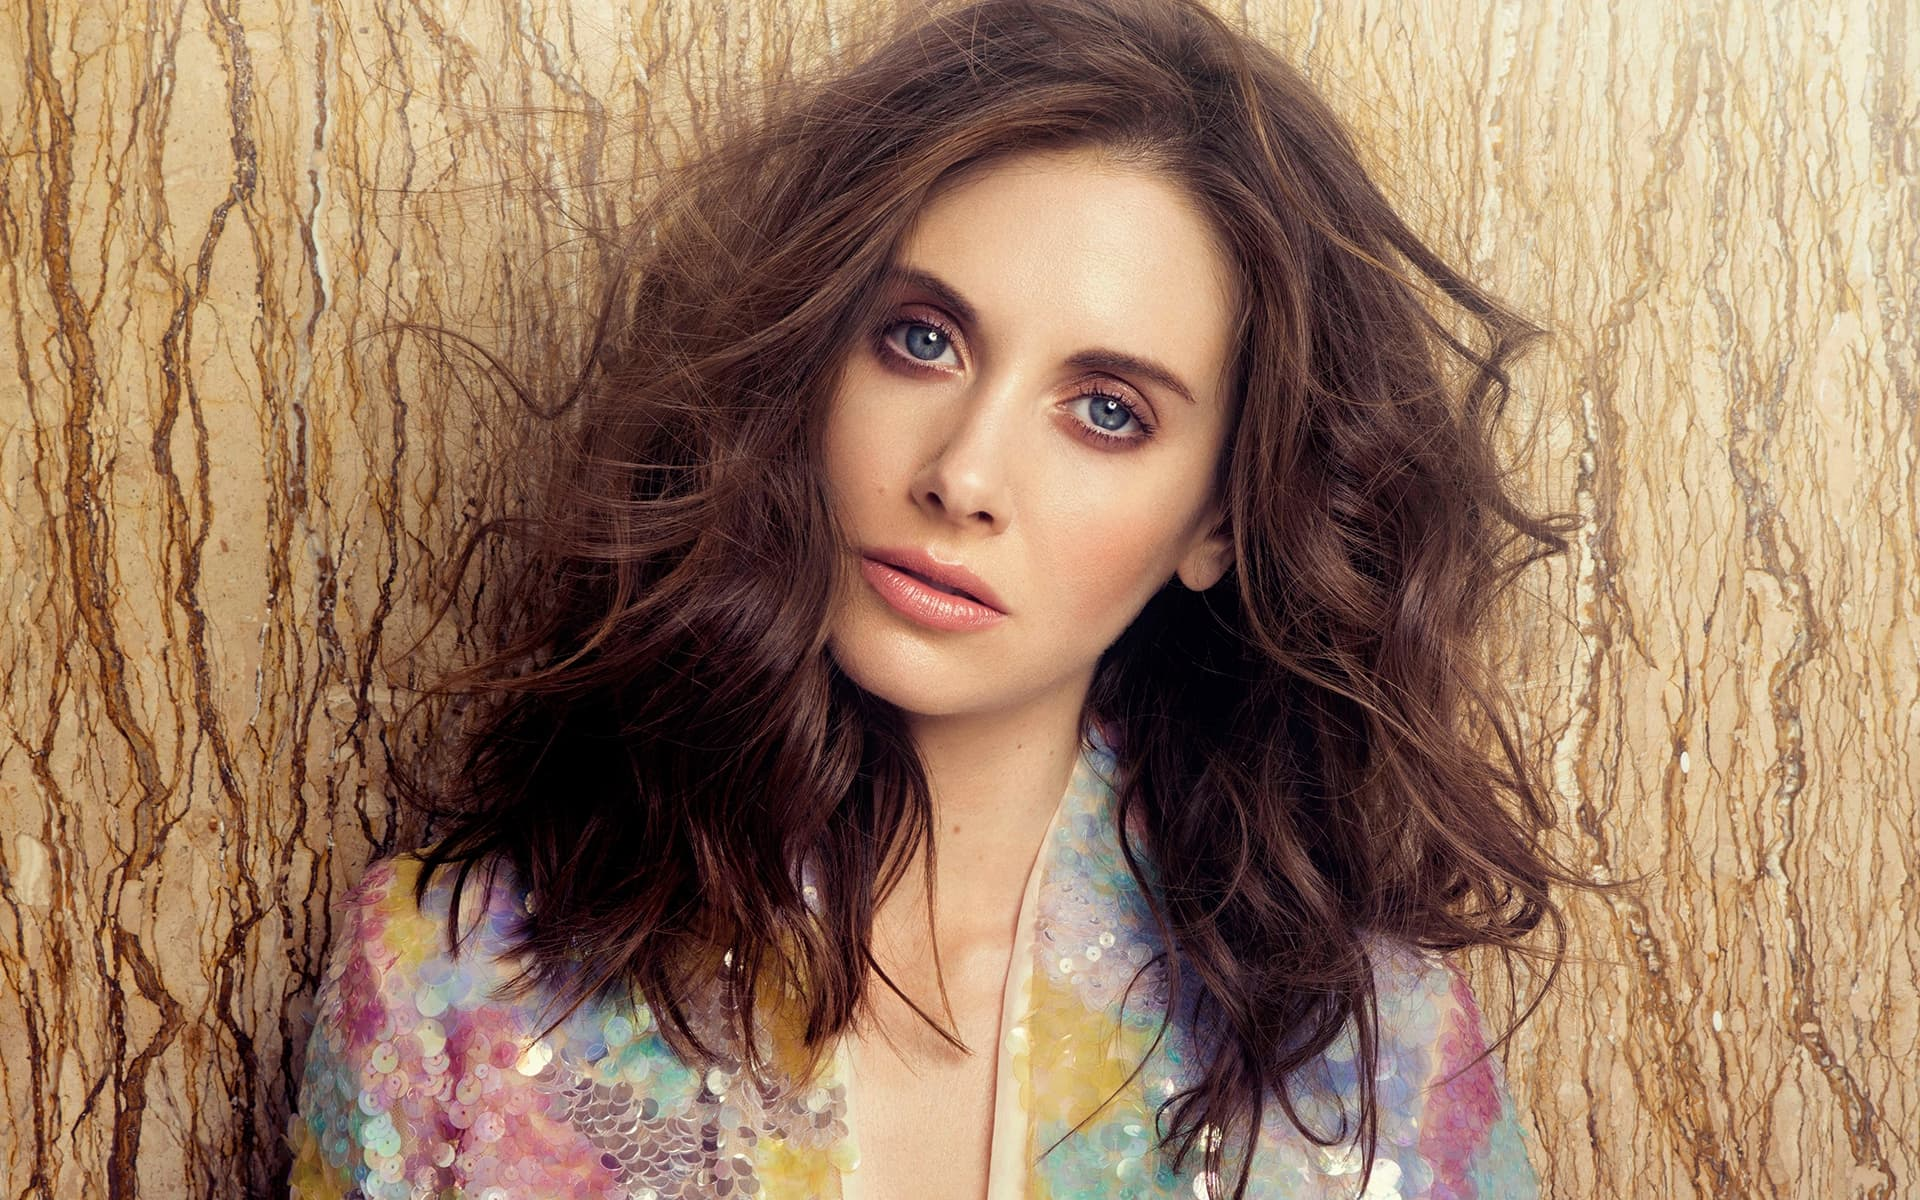 Cute Wallpapers For March 17 Alison Brie Wallpapers High Quality Resolution Download